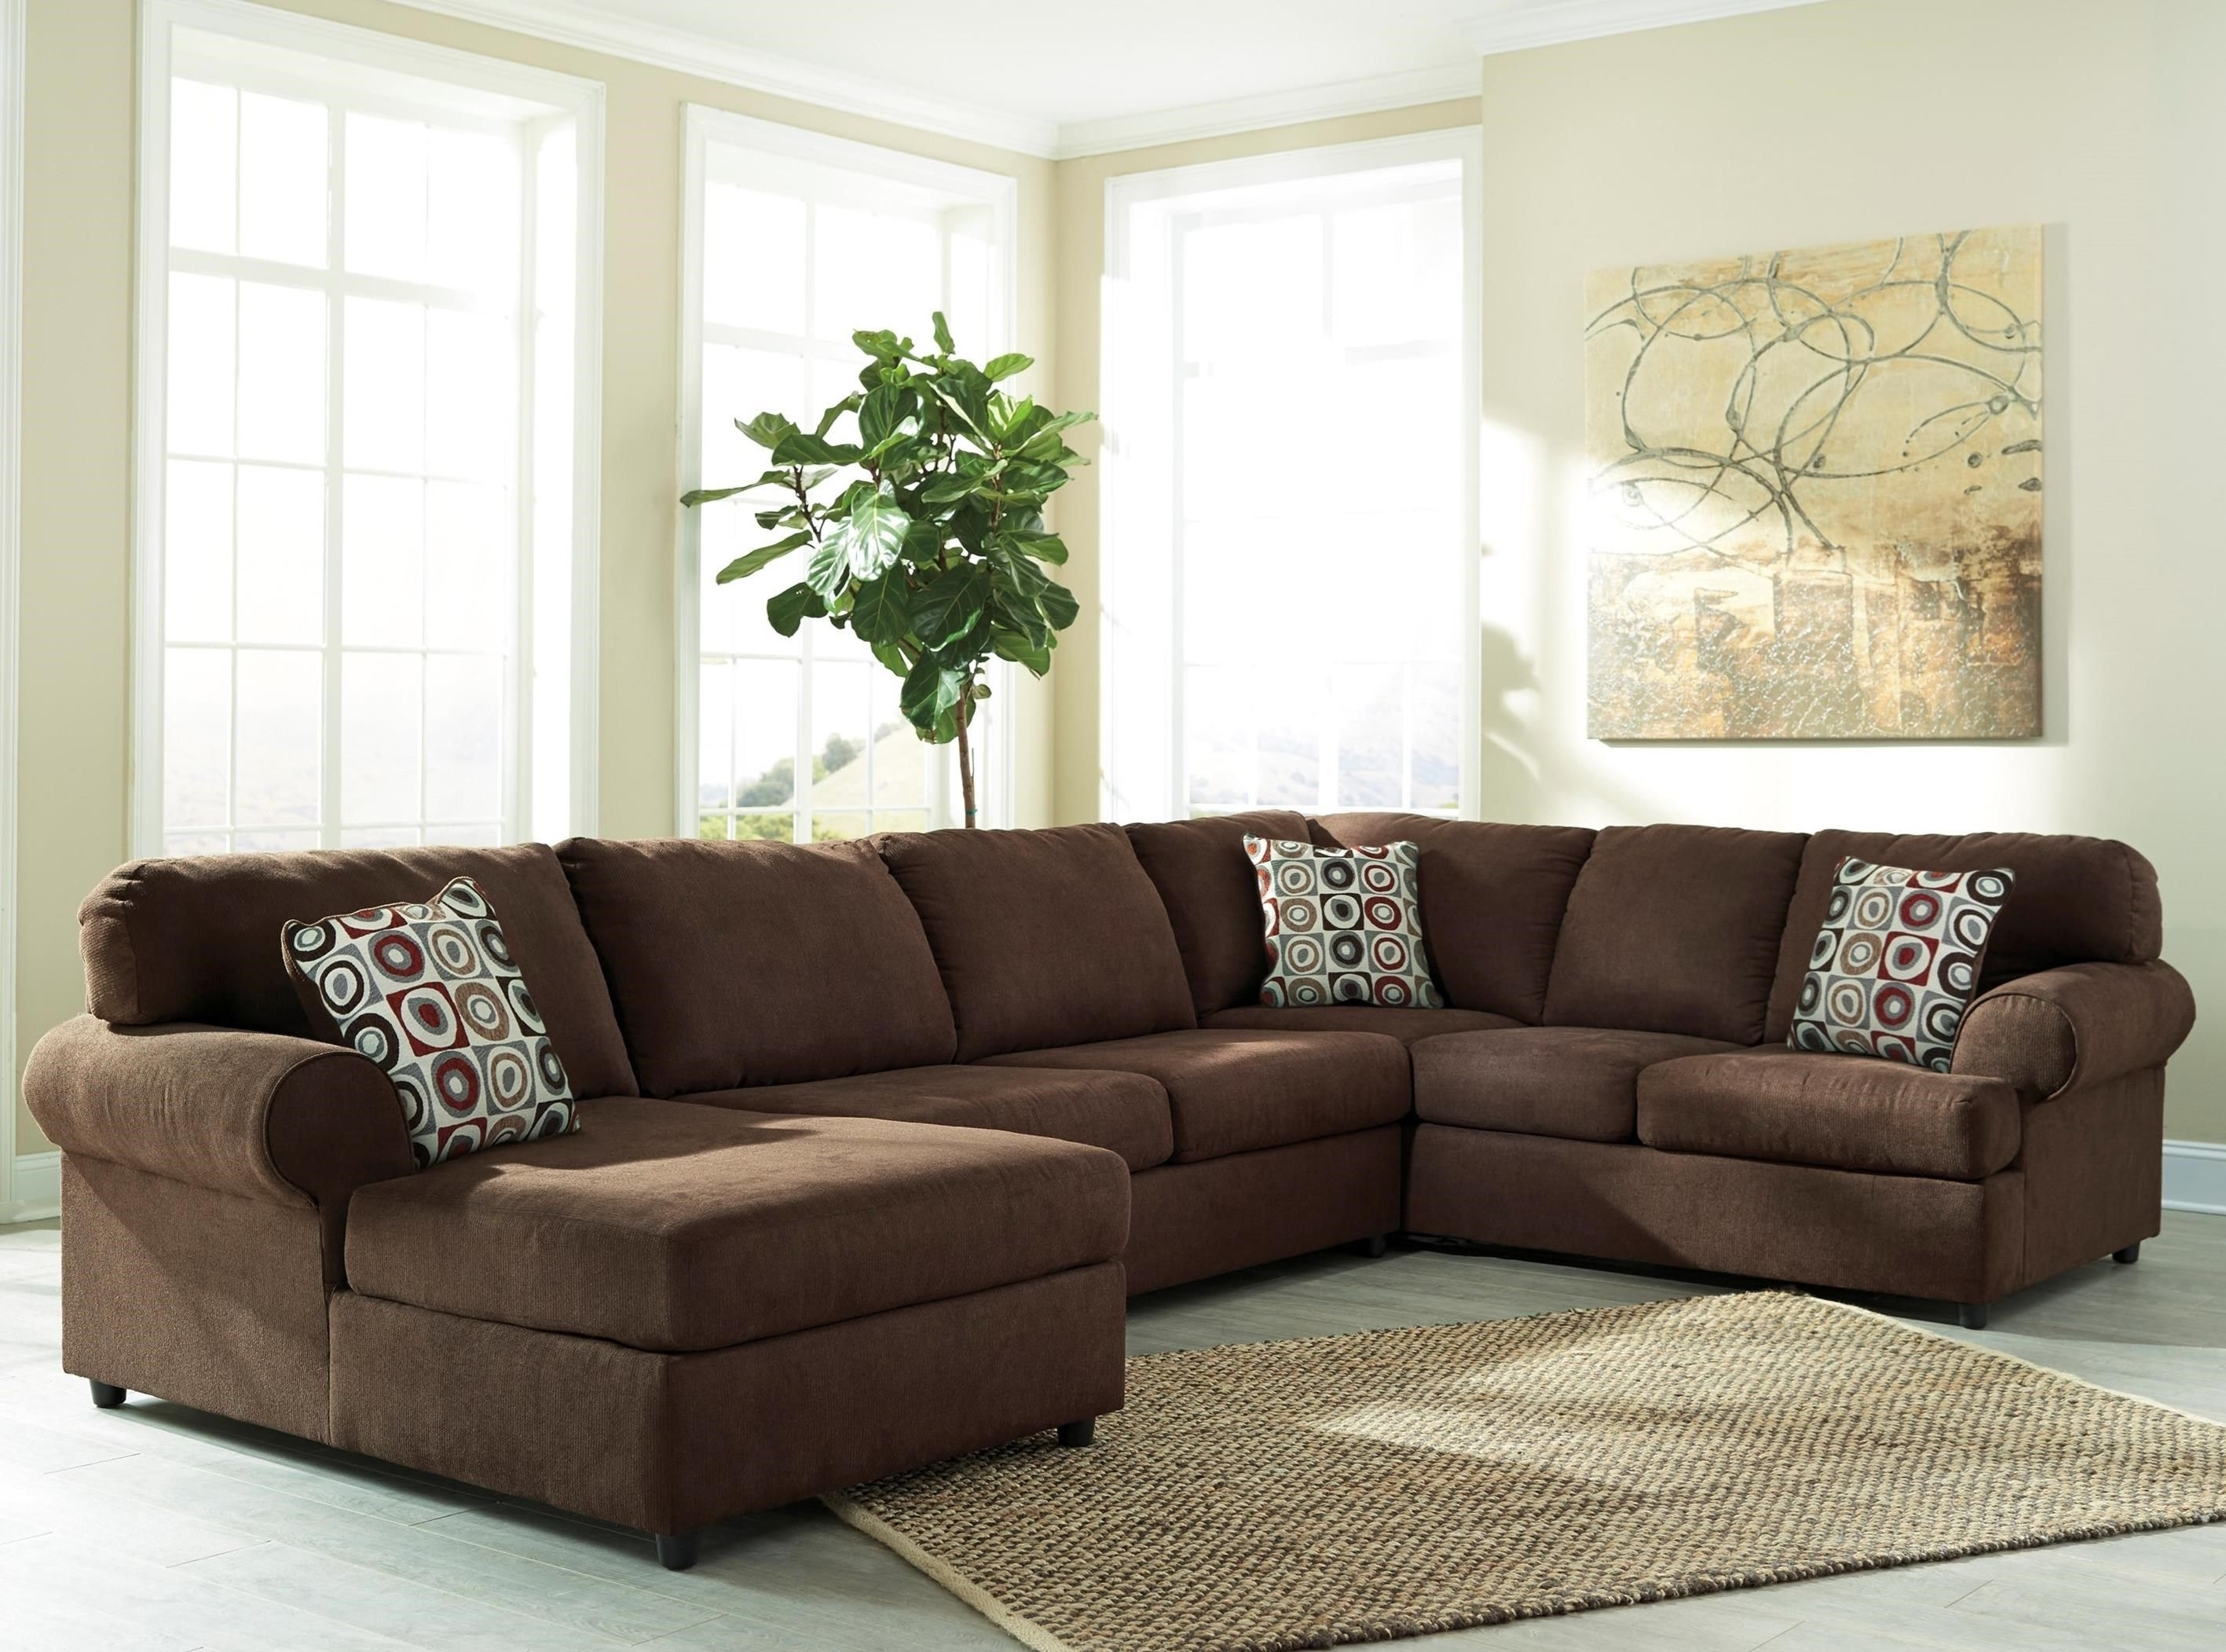 Jayceon 3 Piece Sectional With Left Chaisesignature Design Intended For Royal Furniture Sectional Sofas (Image 8 of 10)